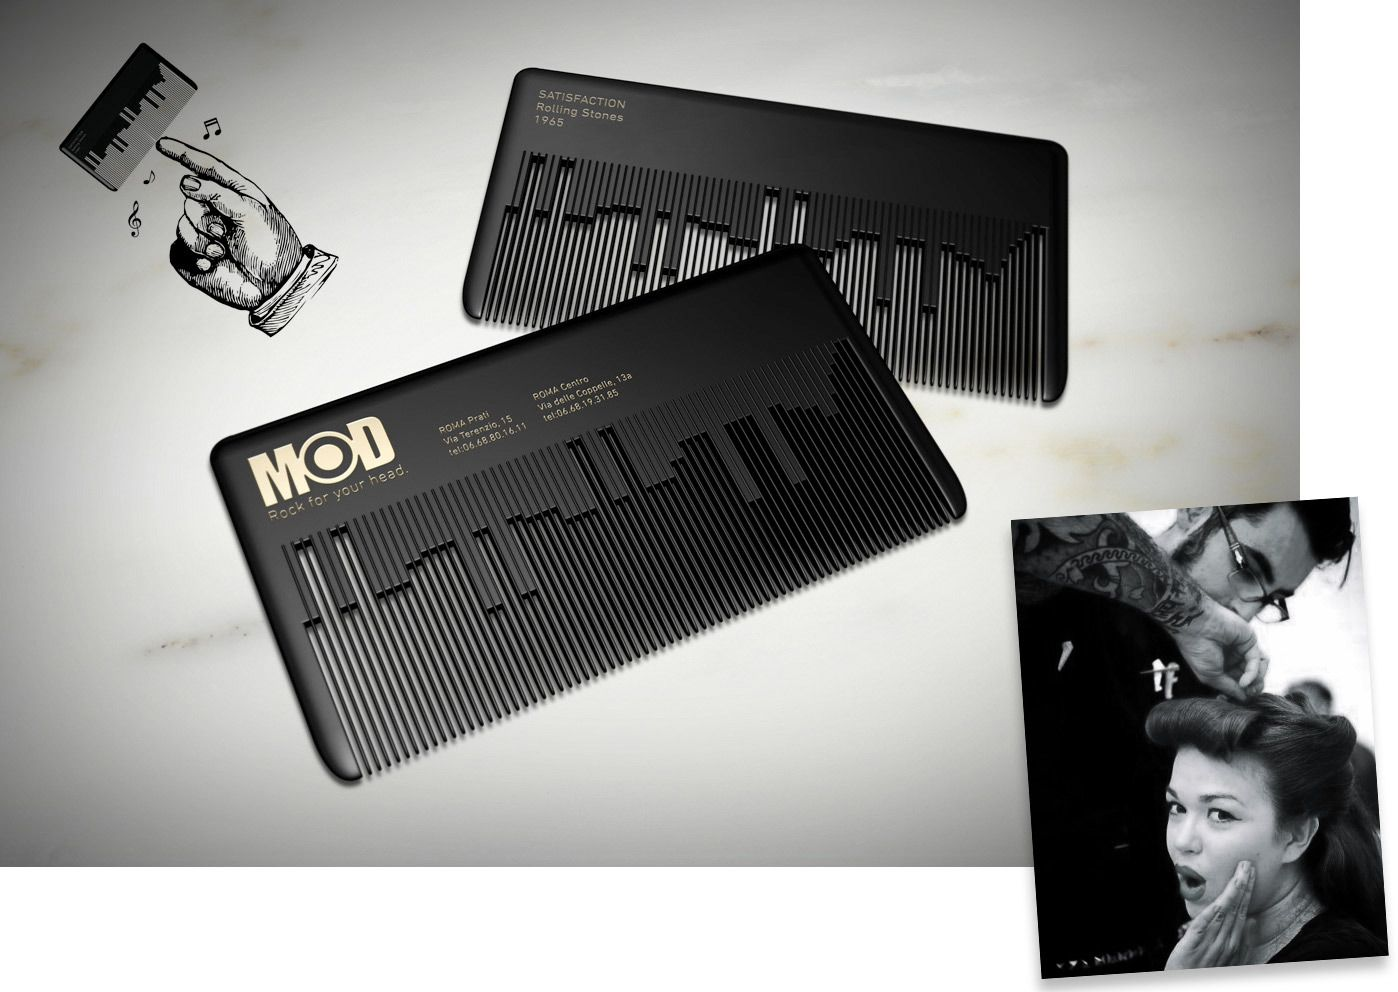 MODhair : Musical comb businesscard